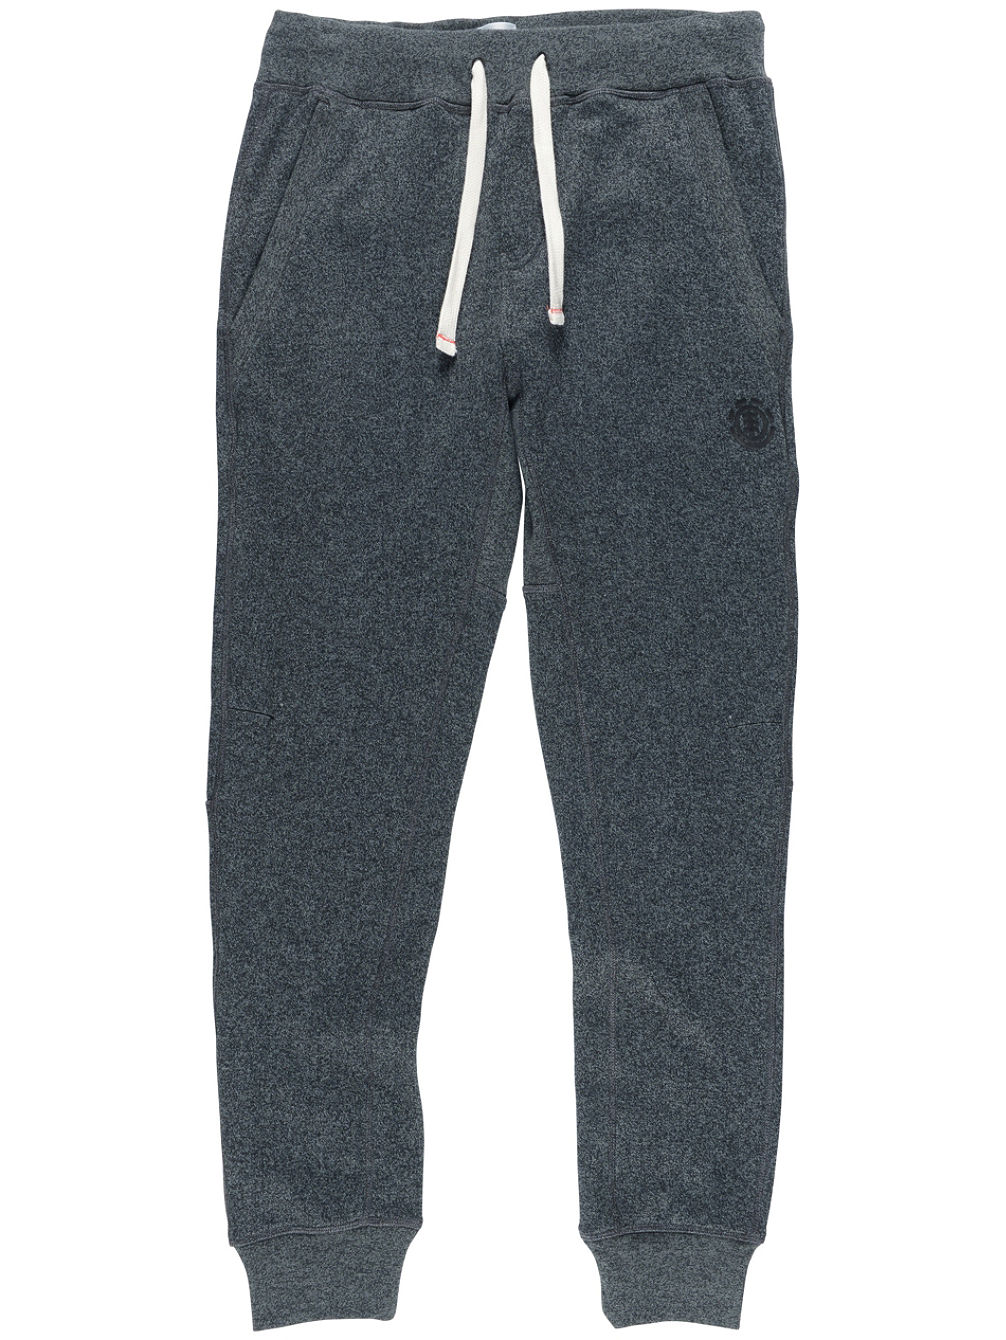 Campus Jogging Pants